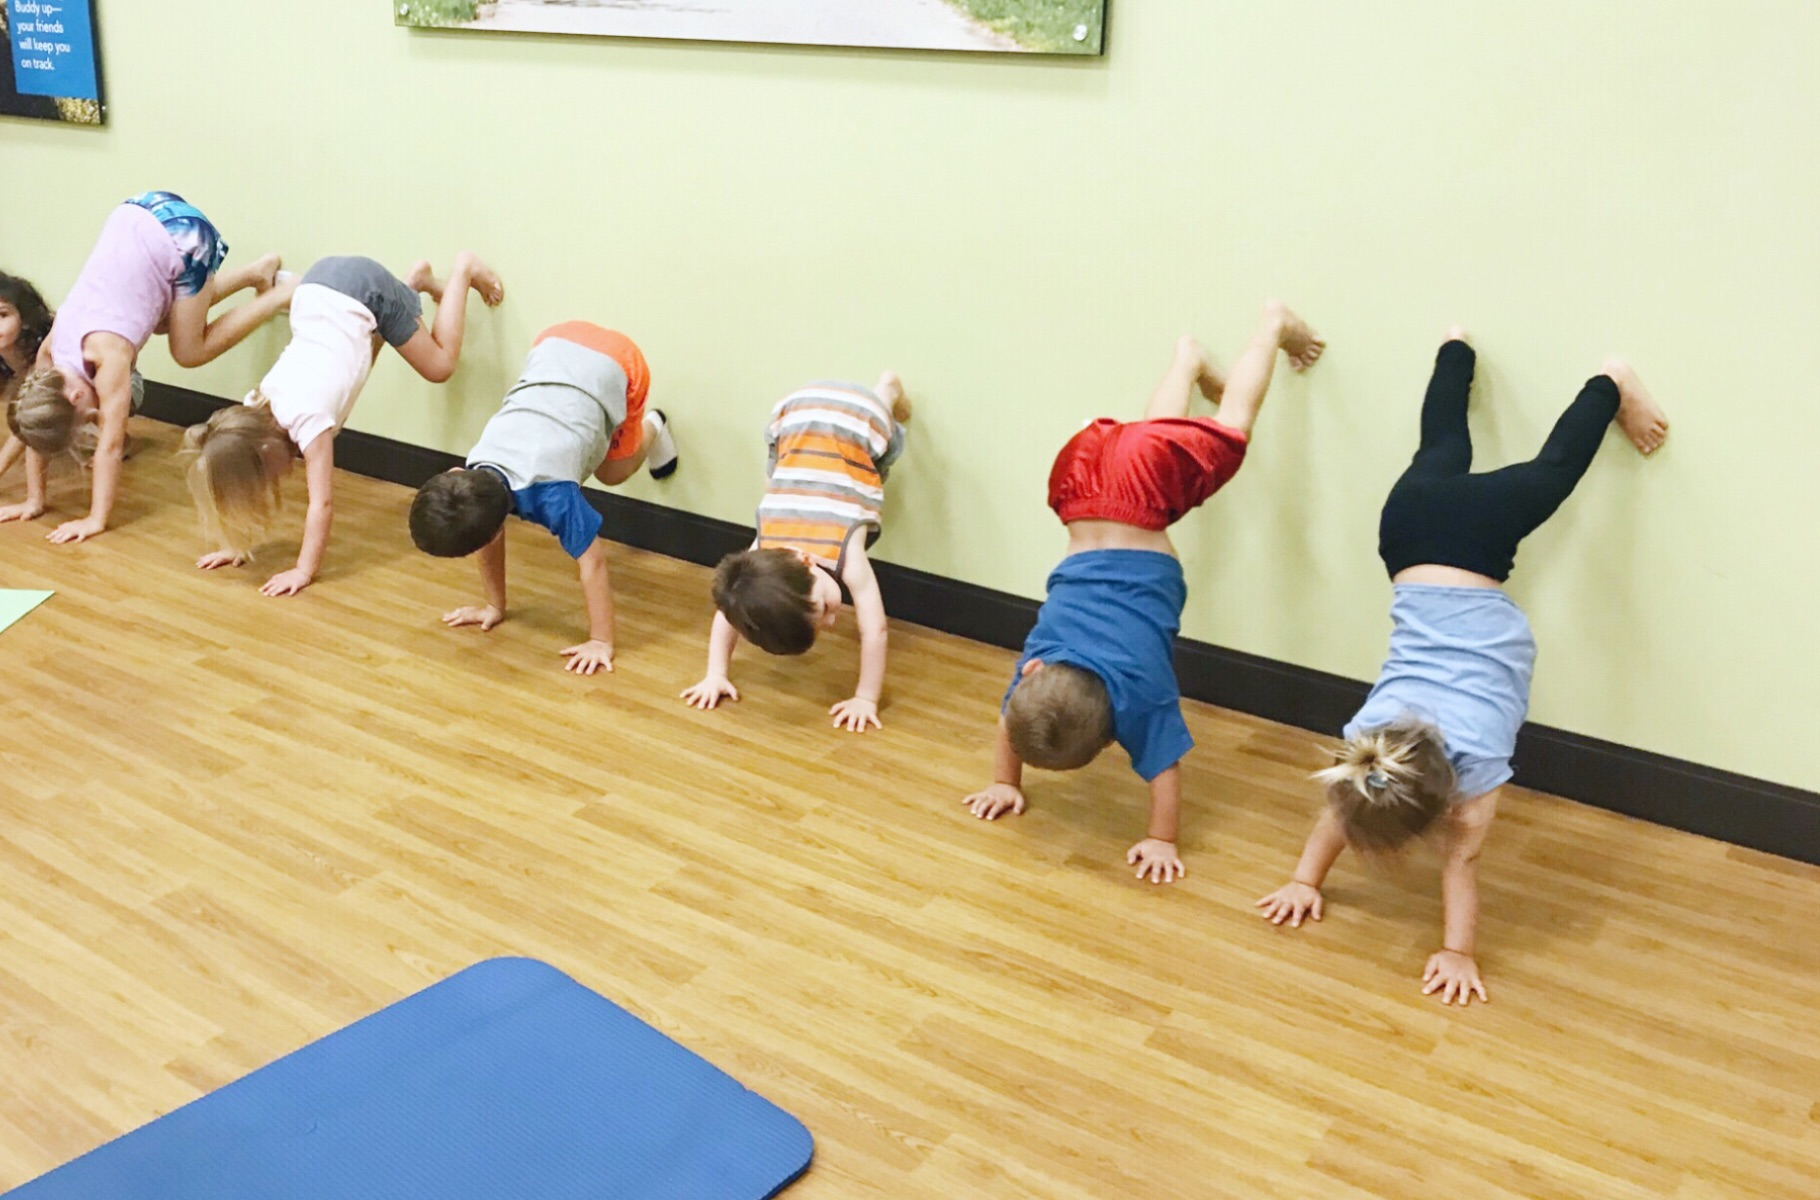 STORYTIME YOGA—Hampden Marketplace   Parents, join your toddler (ages 2-5 years) on a fun story adventure that will bring yoga poses and breathing exercises to life! This dynamic class will have your child barking in downward dog and hissing in cobra, helping children strengthen coordination and body awareness, give them techniques to calm and relax, and promote bonding between parent and child. Please bring your own mat.